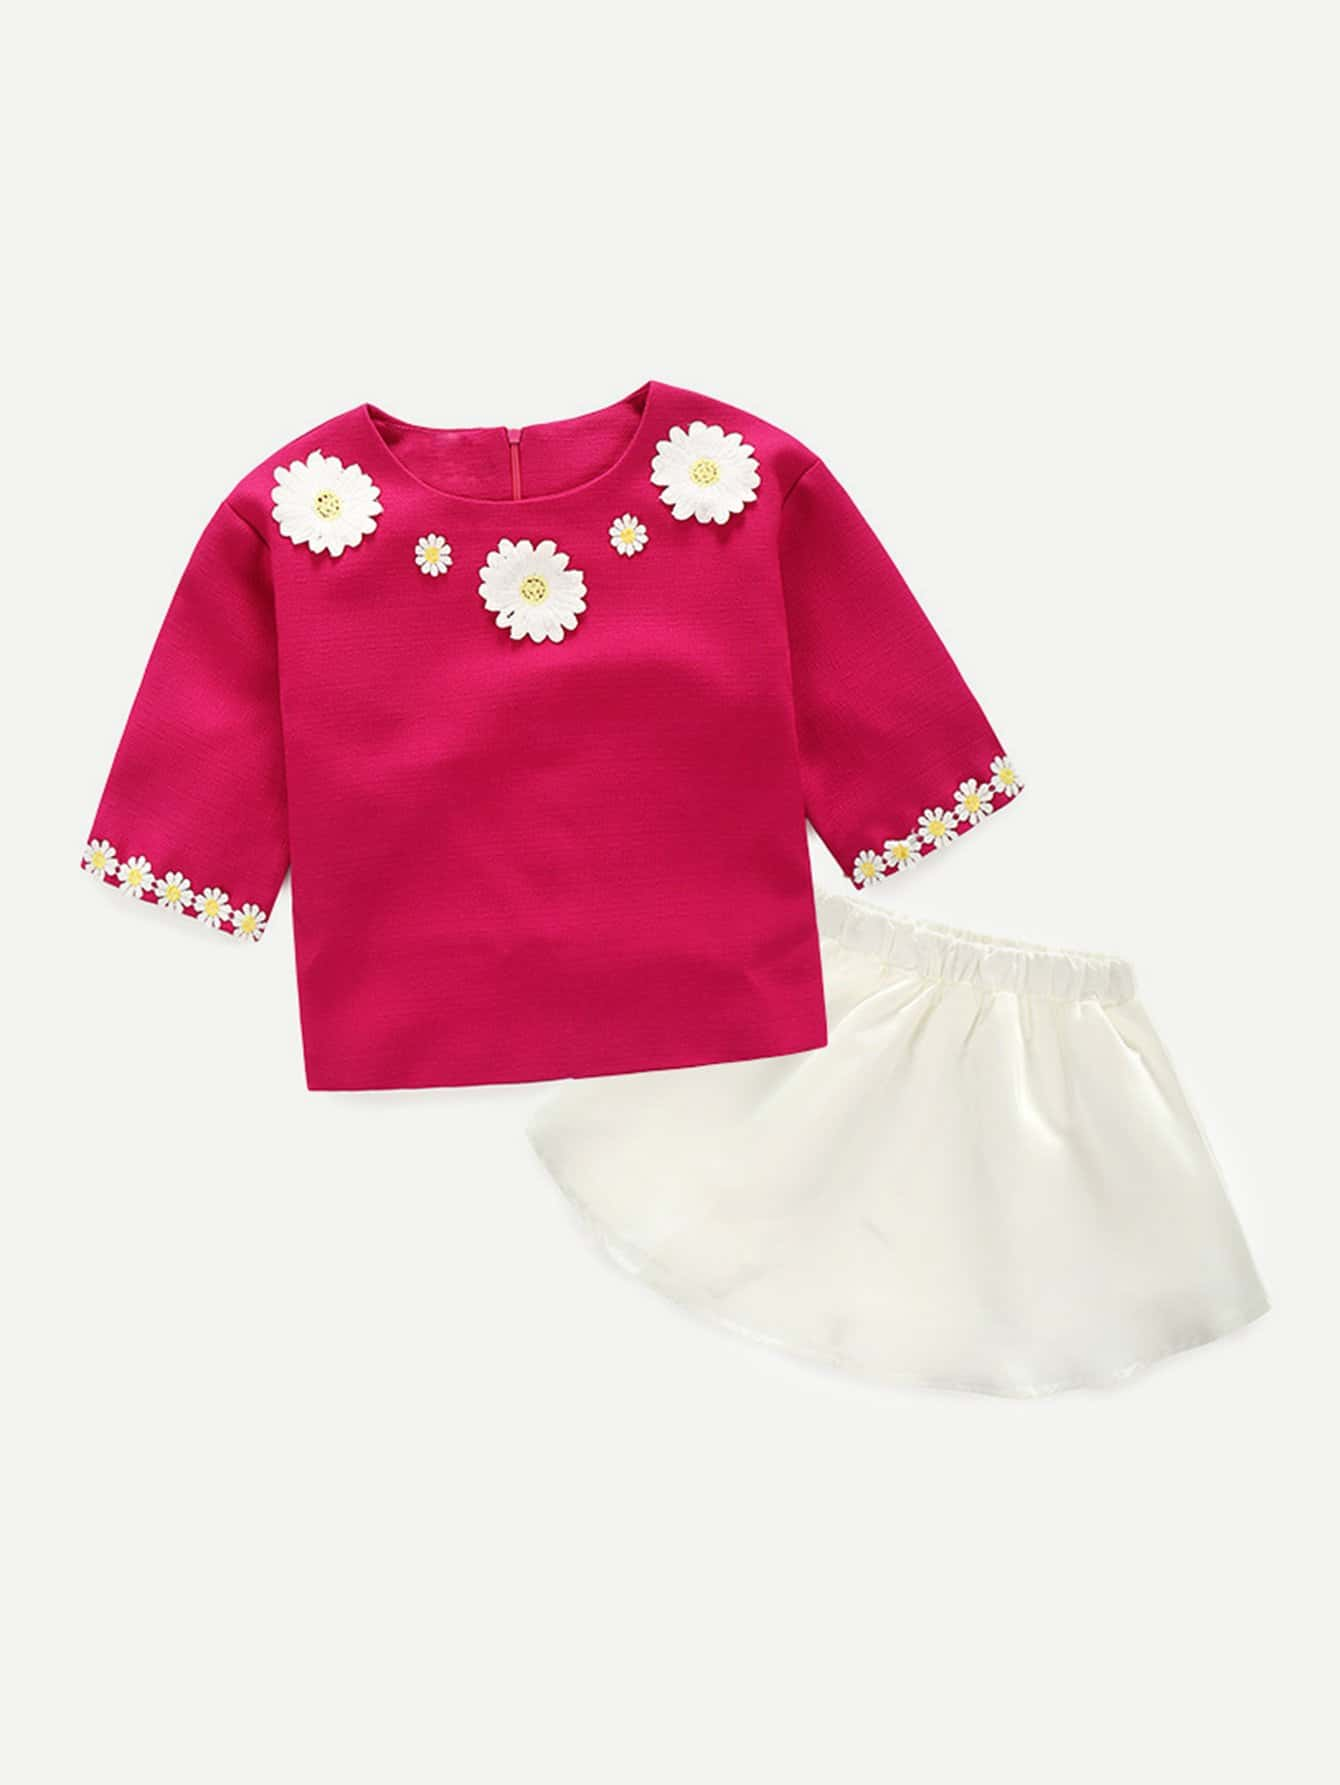 Girls Lace Panel Top With Skirt halloween white skull kindergarten princess grace plain red cotton twin bow top rwb star satin trim skirt girls outfit set nb 8y